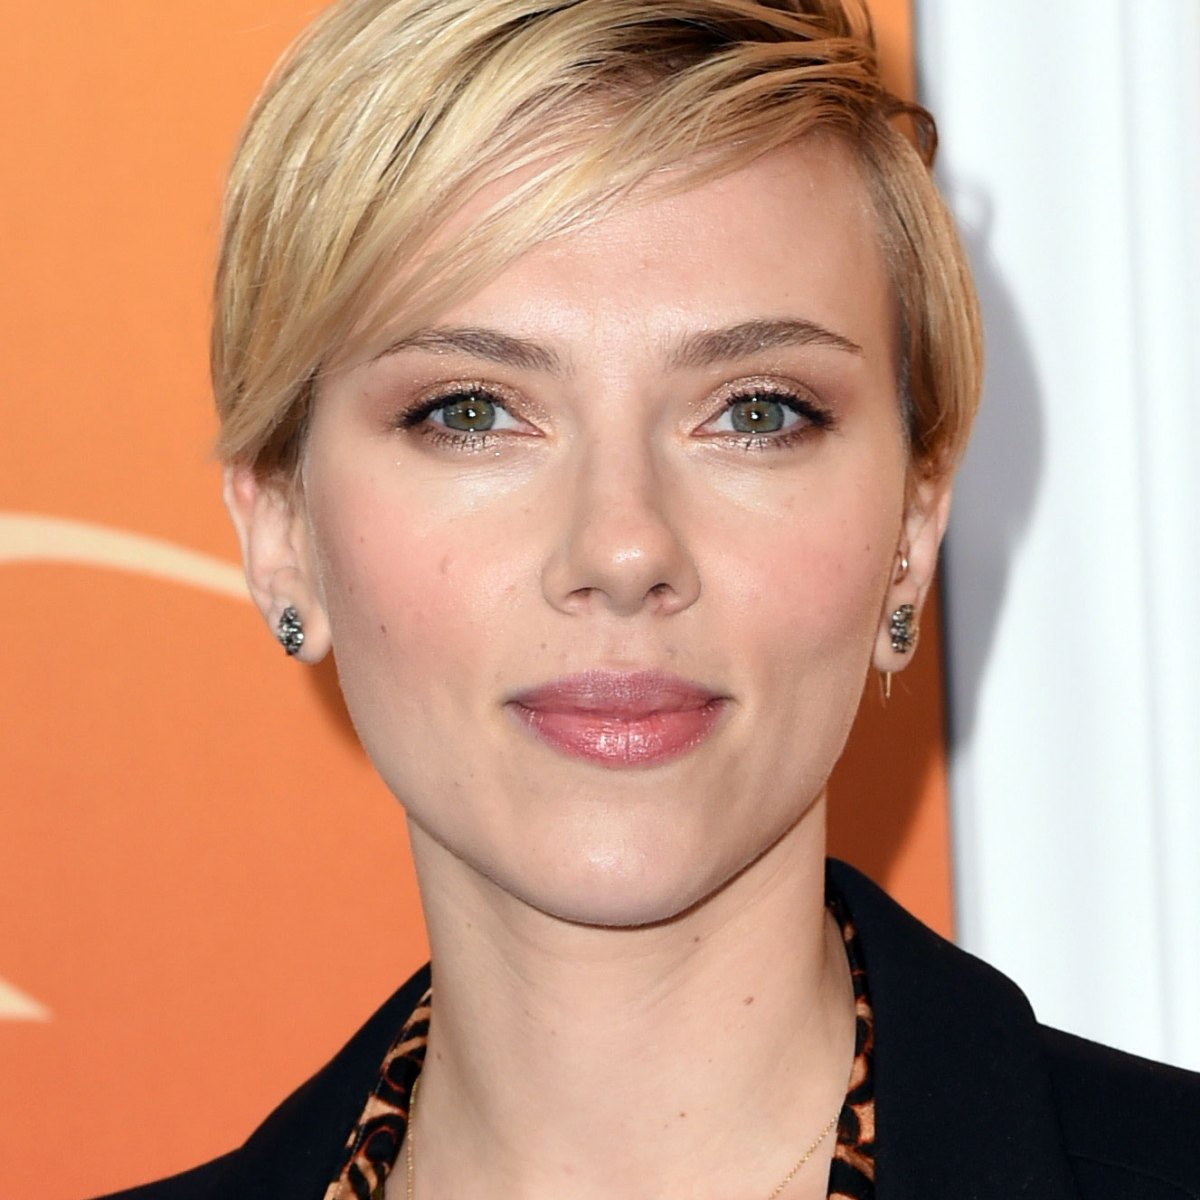 Scarlett Johansson Transformation Find Out If She Got Plastic Surgery